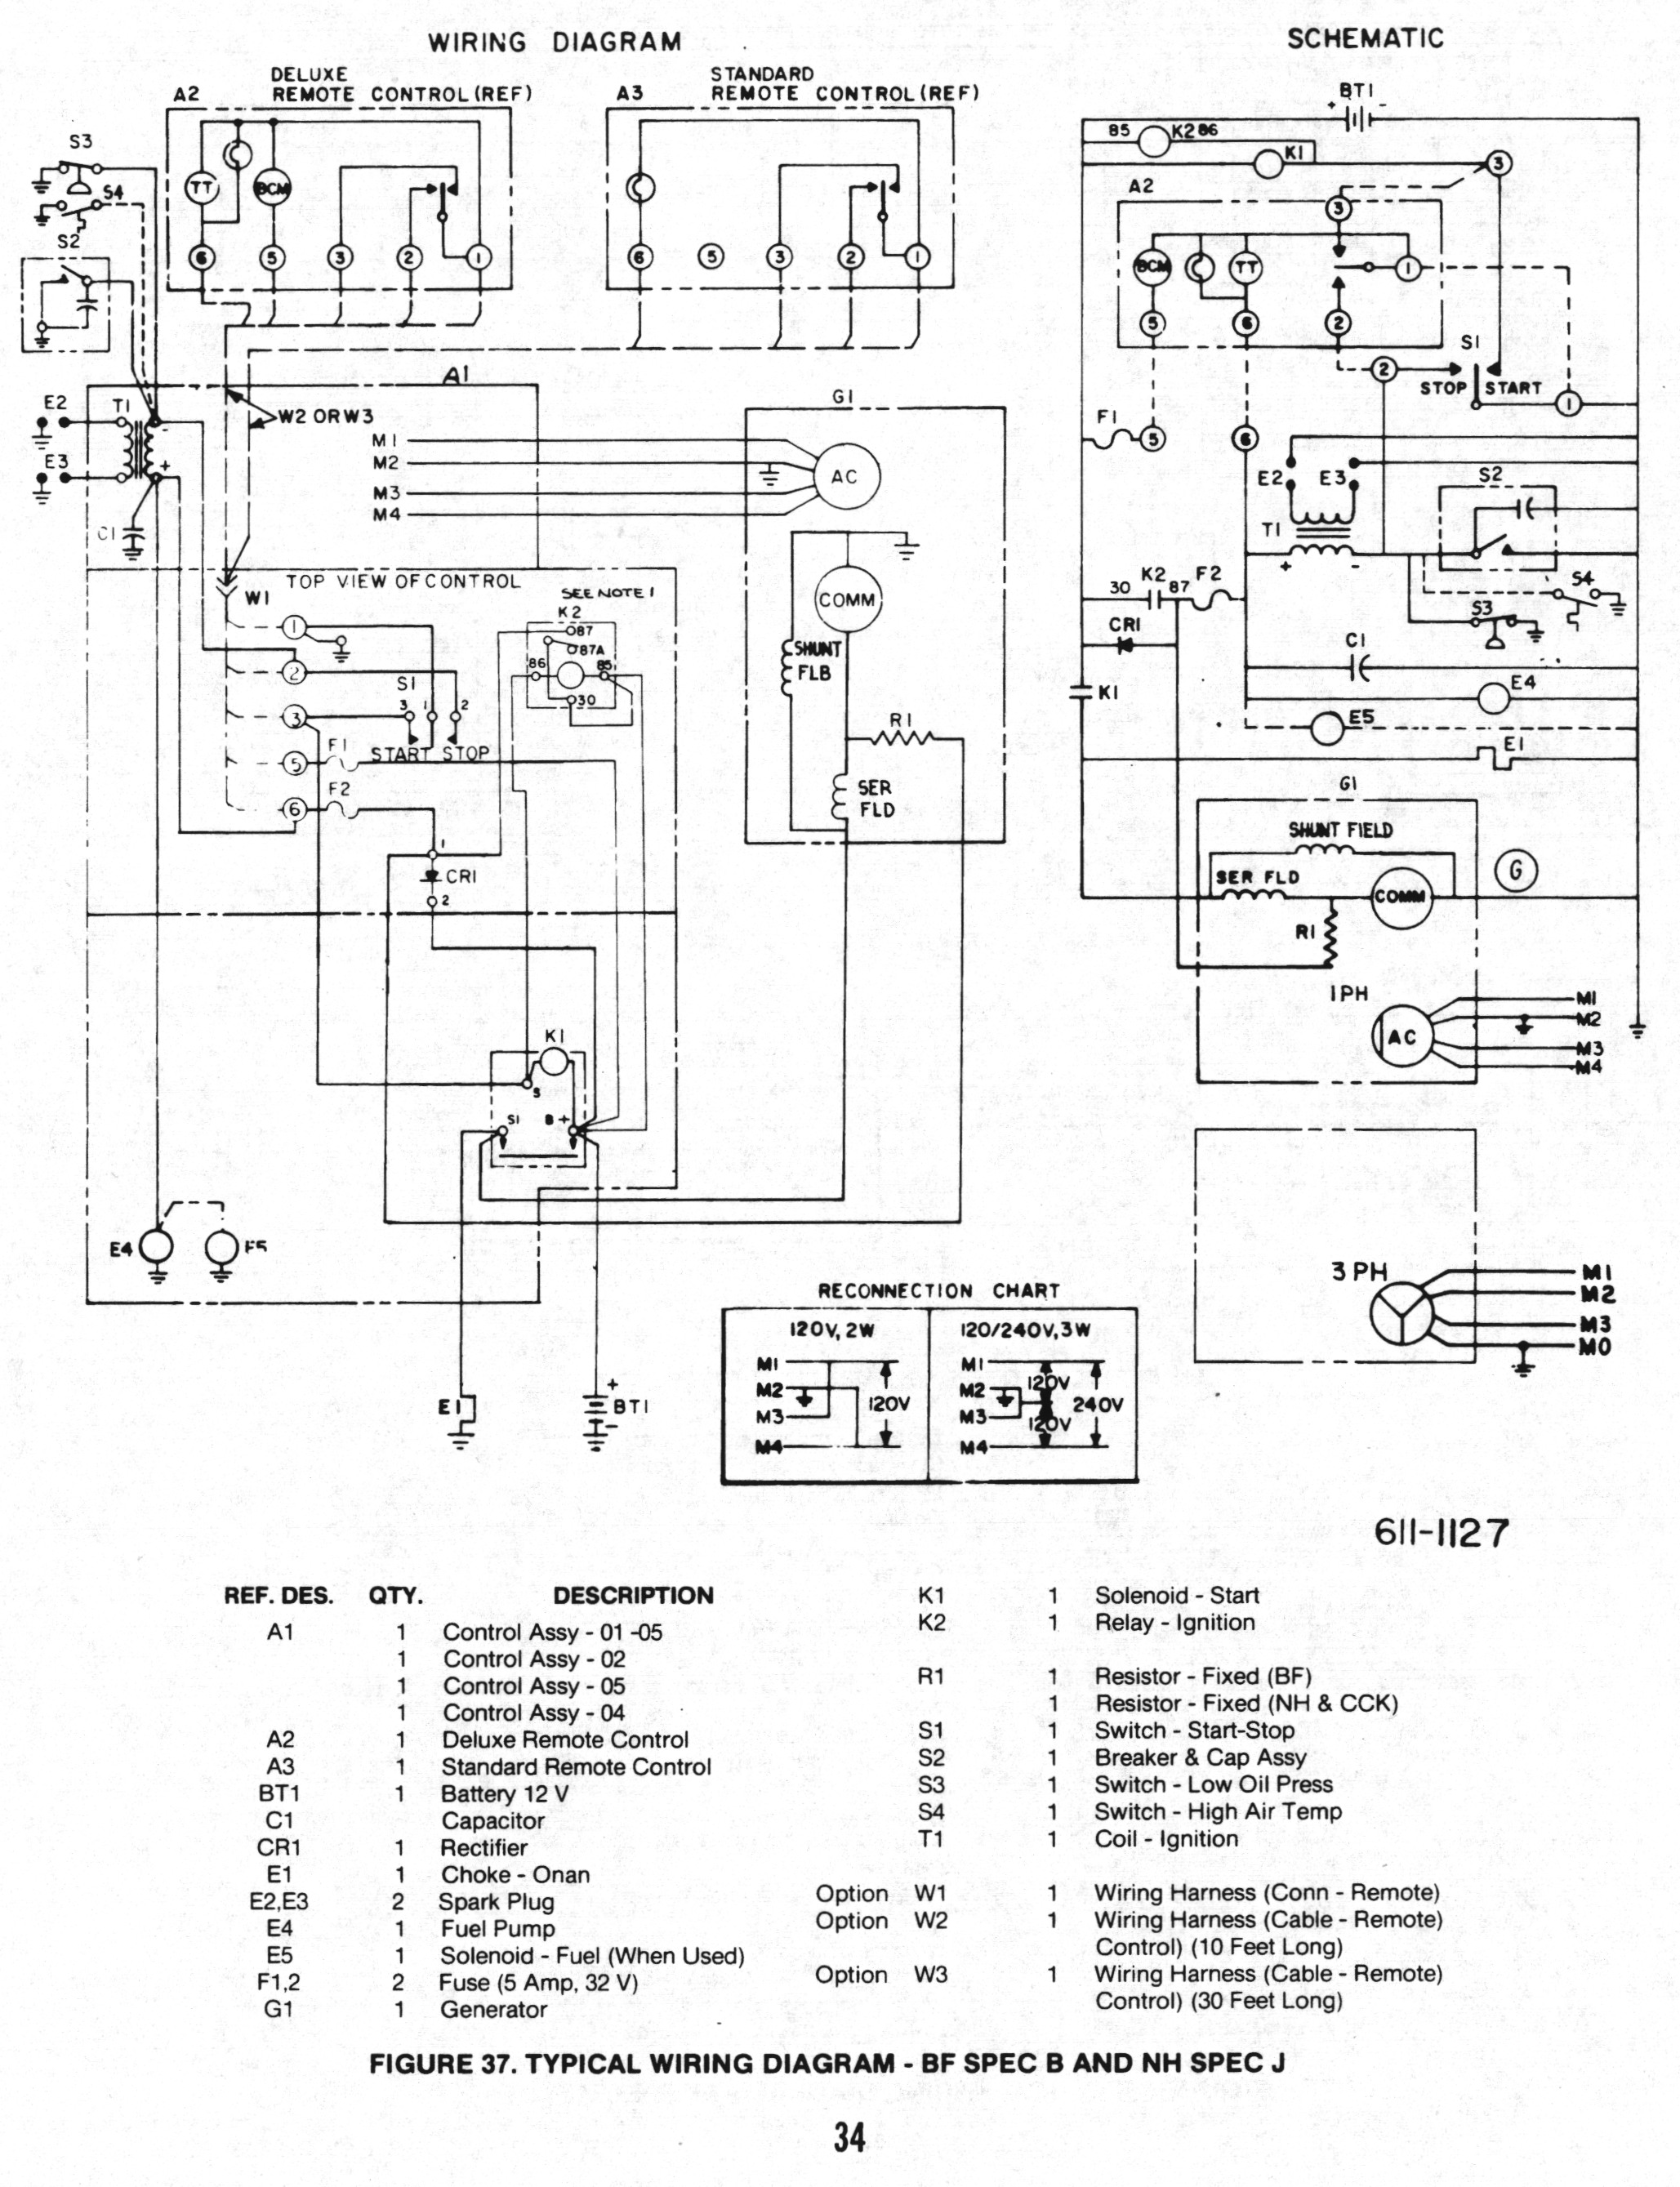 Wiring Diagram For Onan Generator